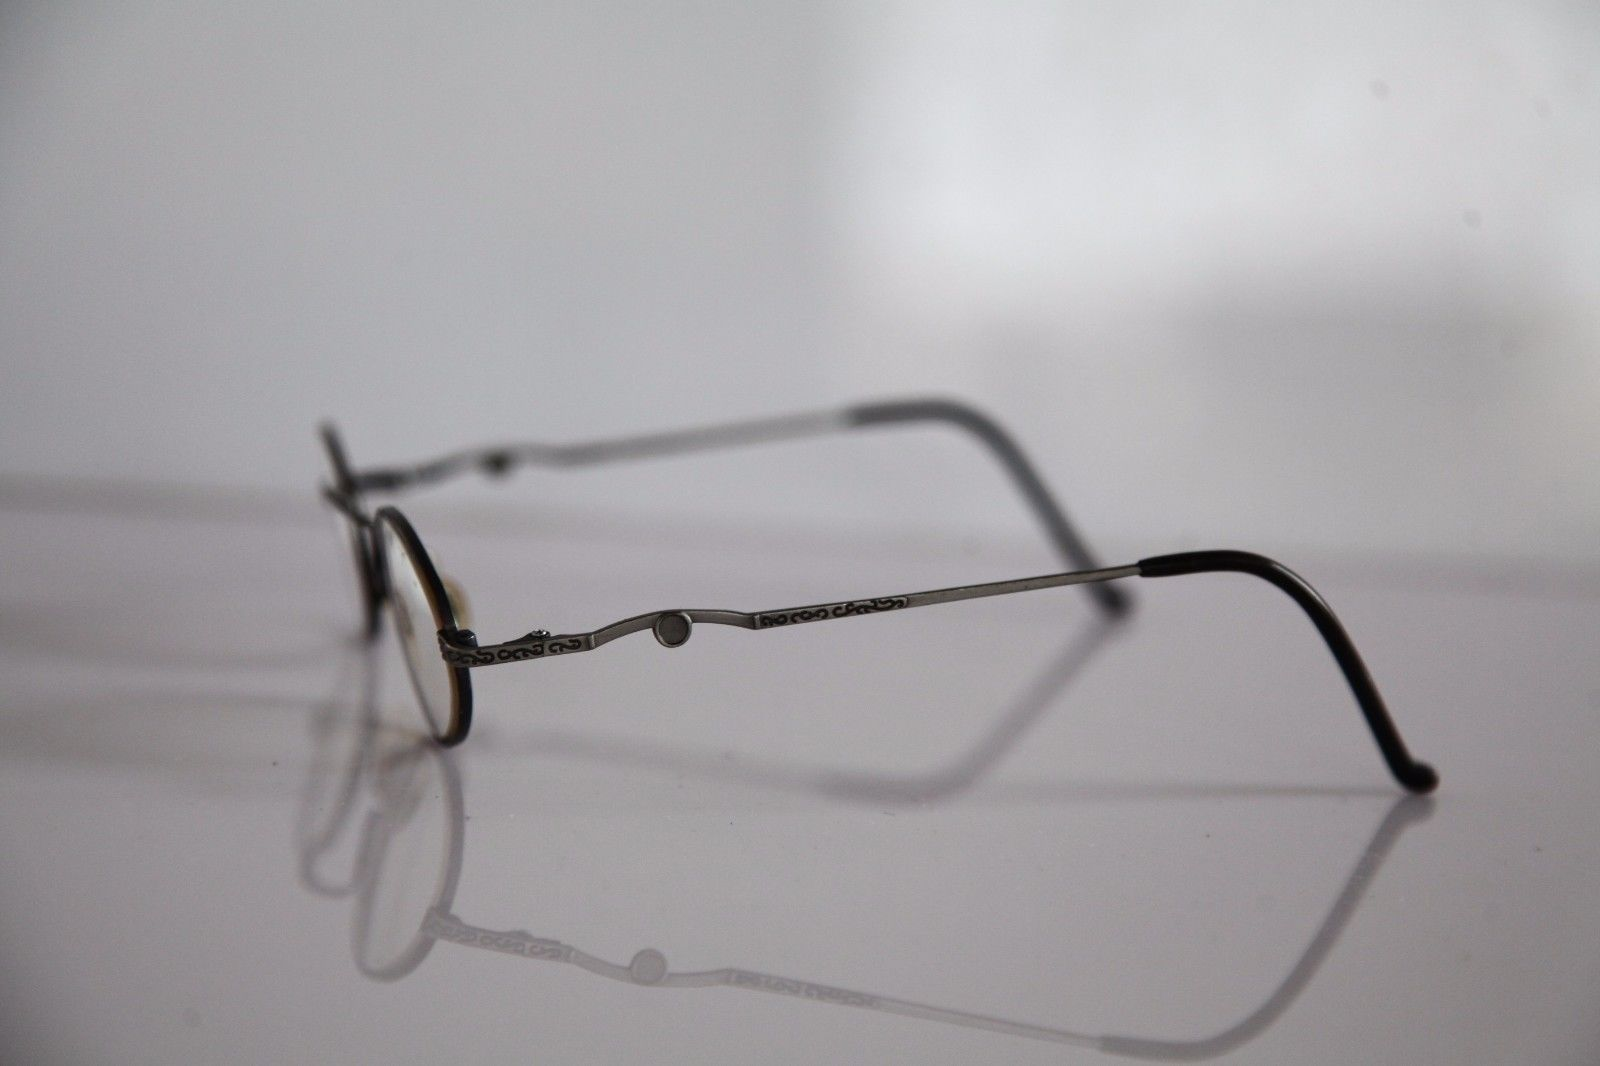 CLAUDIO P. Eyewear, Silver Frame, RX-Able Prescription lenses. Made in Italy image 4